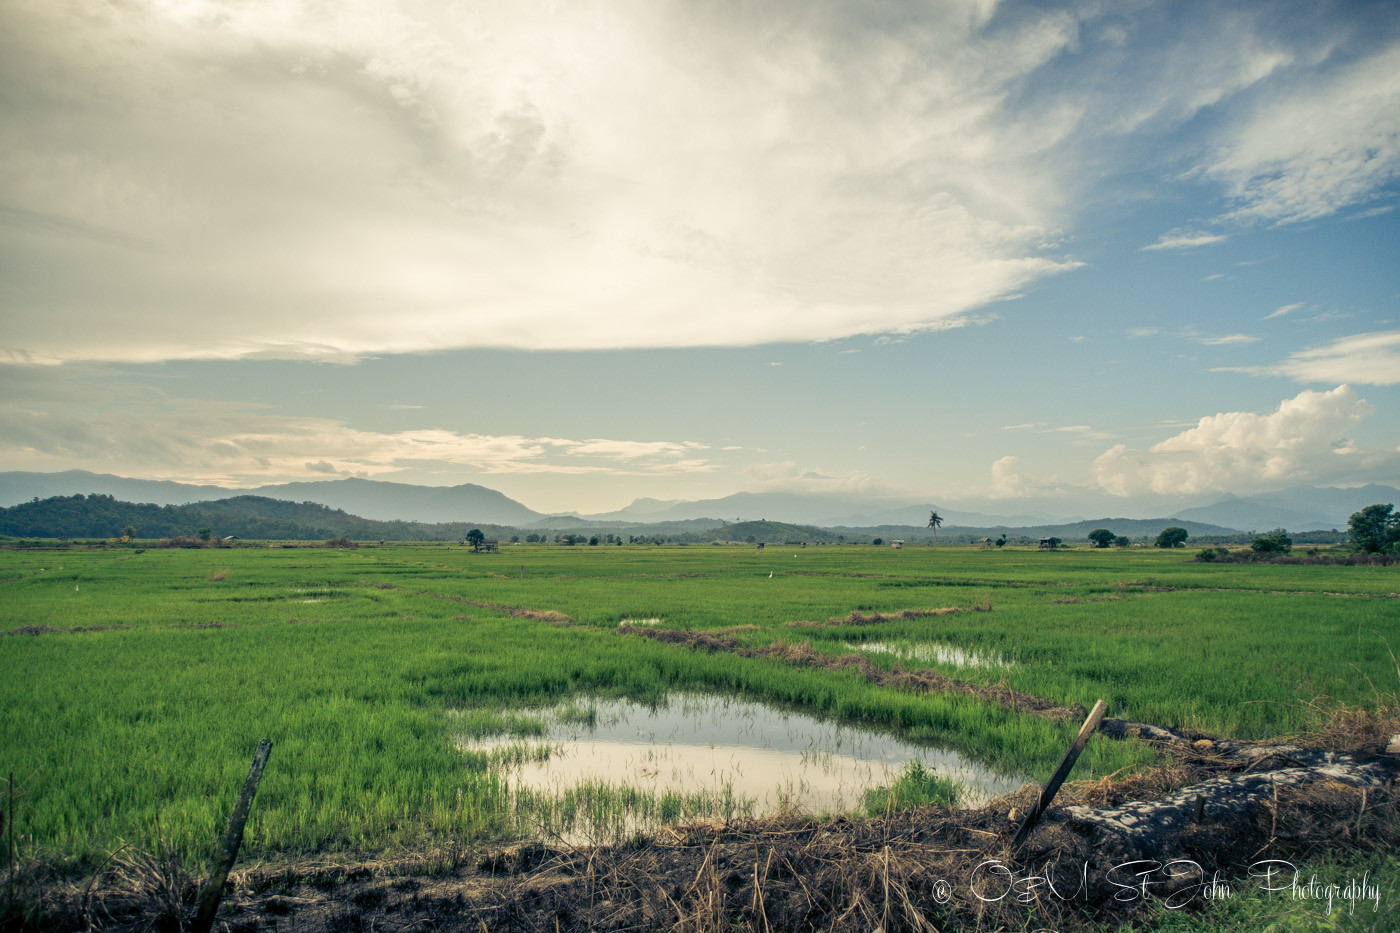 Kota Belud Malaysia  City pictures : Rice paddies just outside of Kota Belud, Sabah, Malaysia